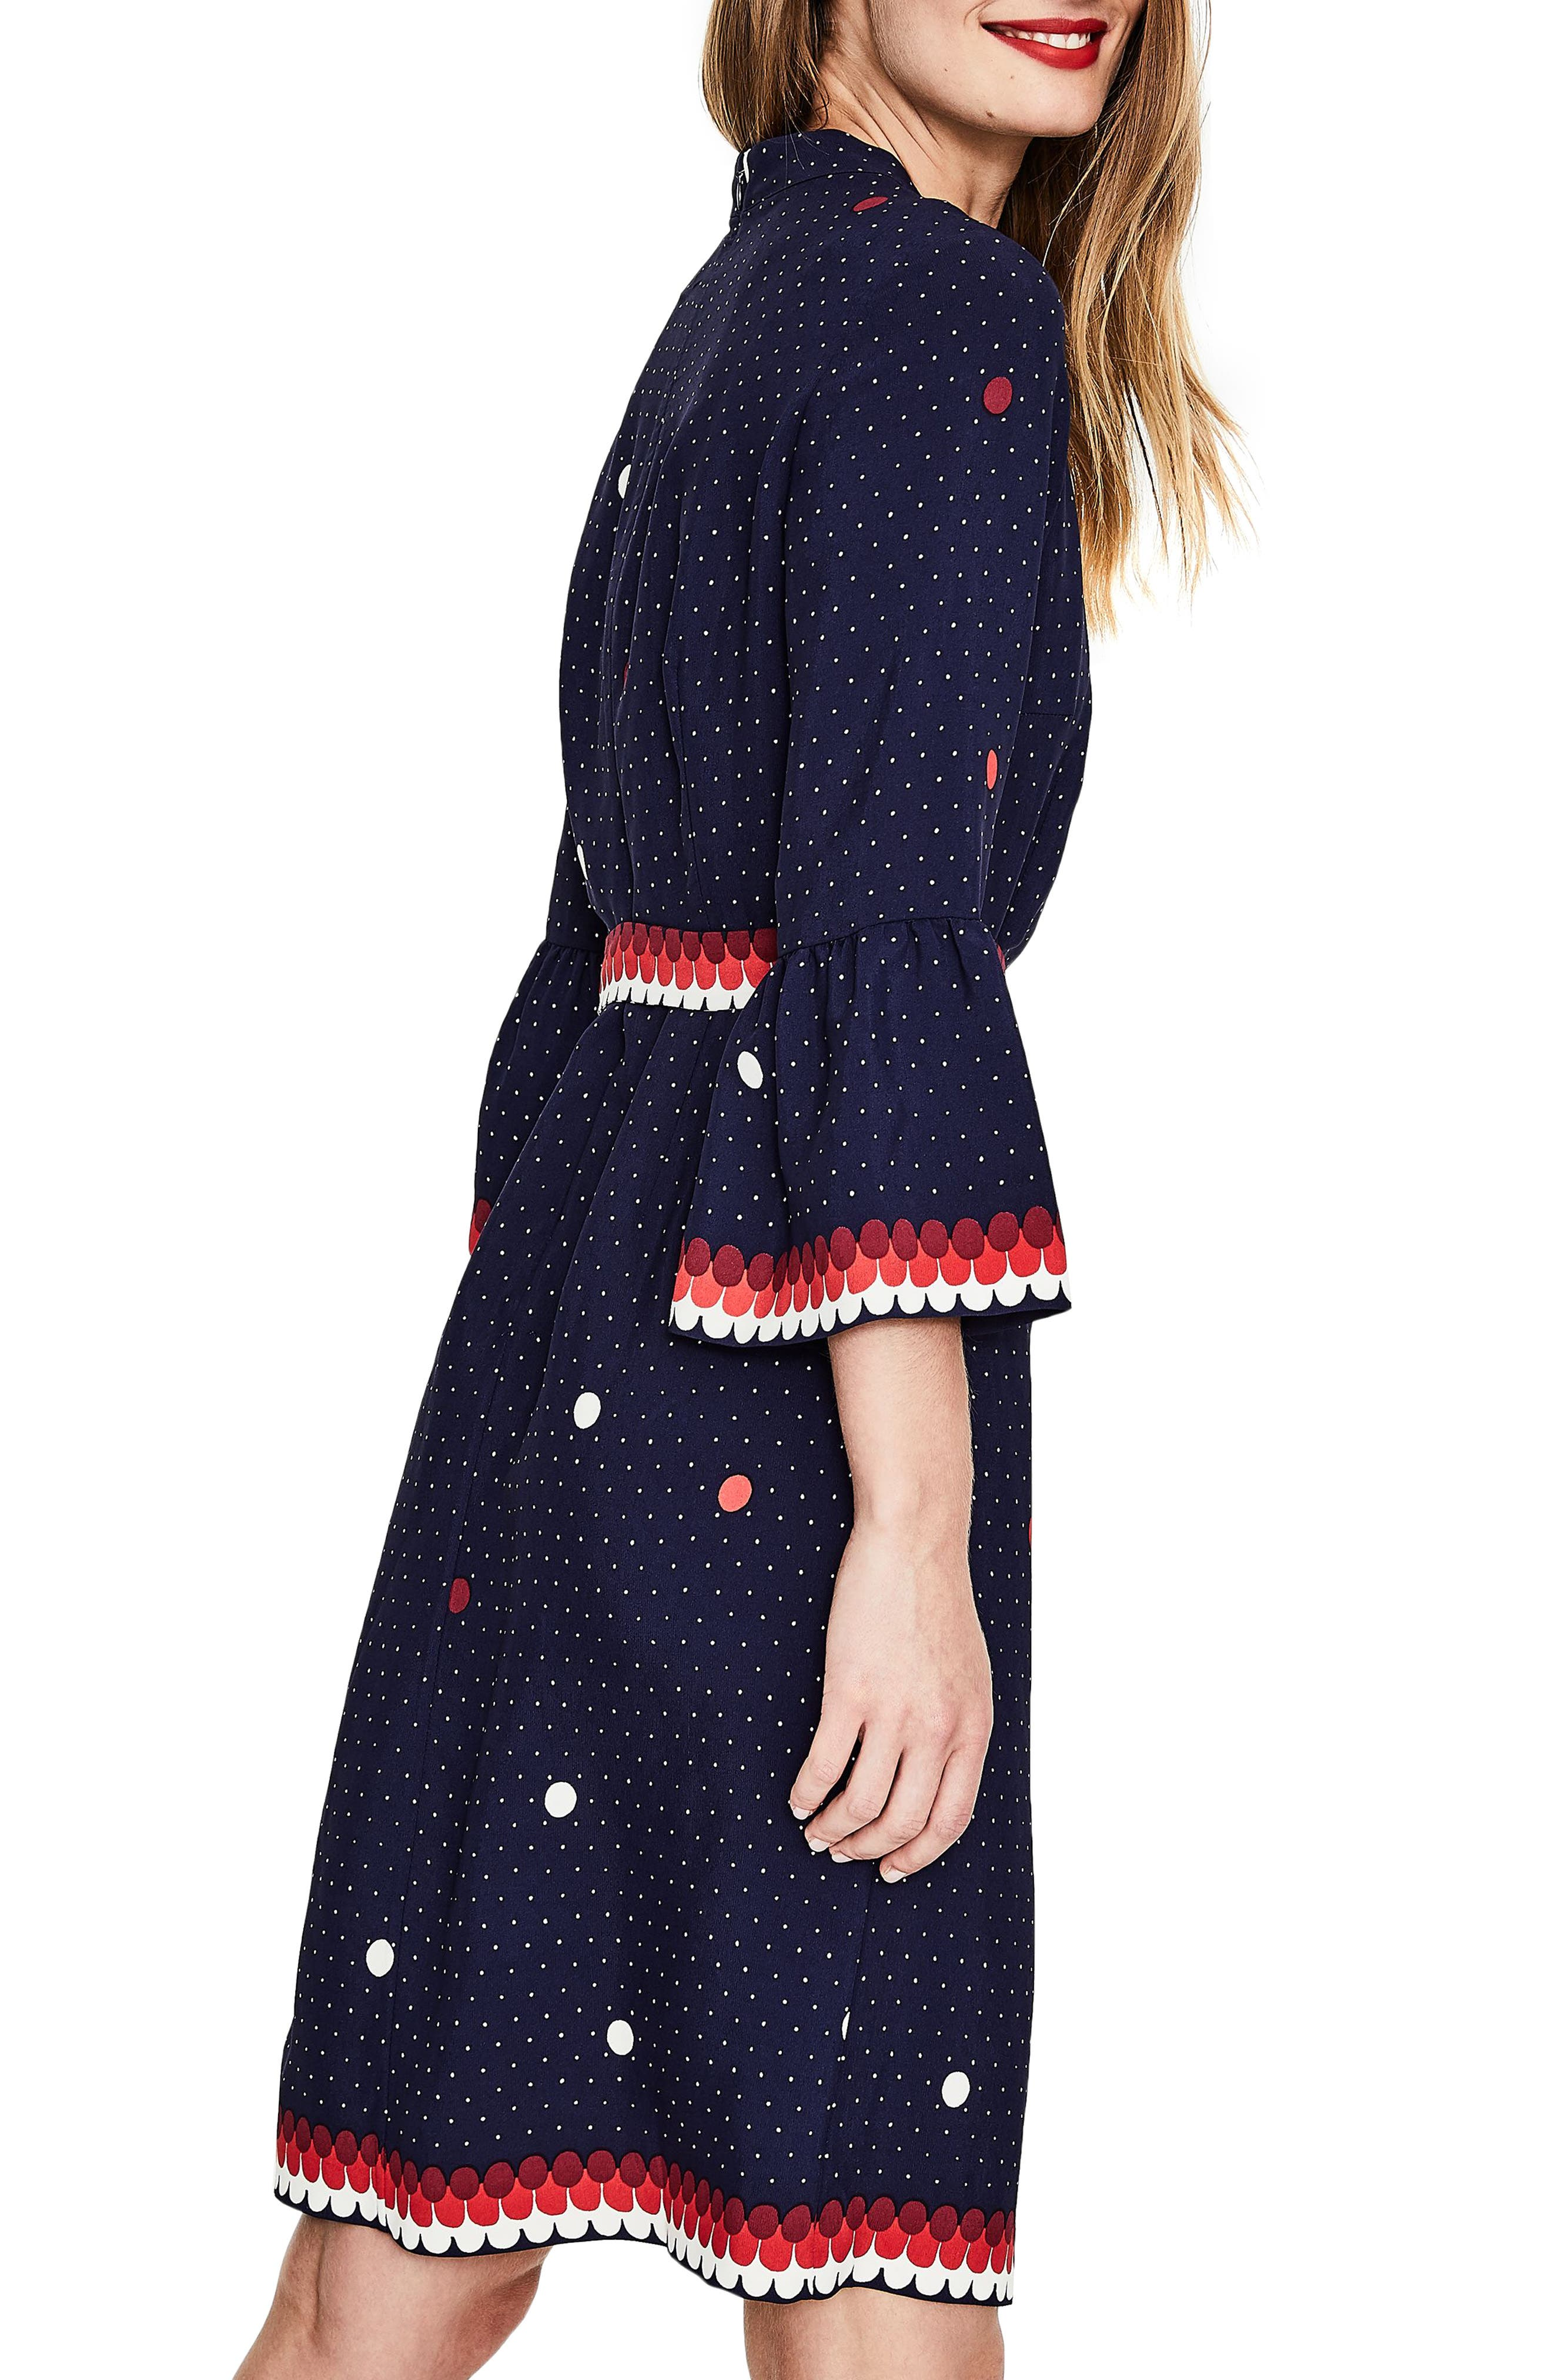 Ruffle Sleeve Polka Dot DRess,                             Alternate thumbnail 4, color,                             Navy/ Spot Border